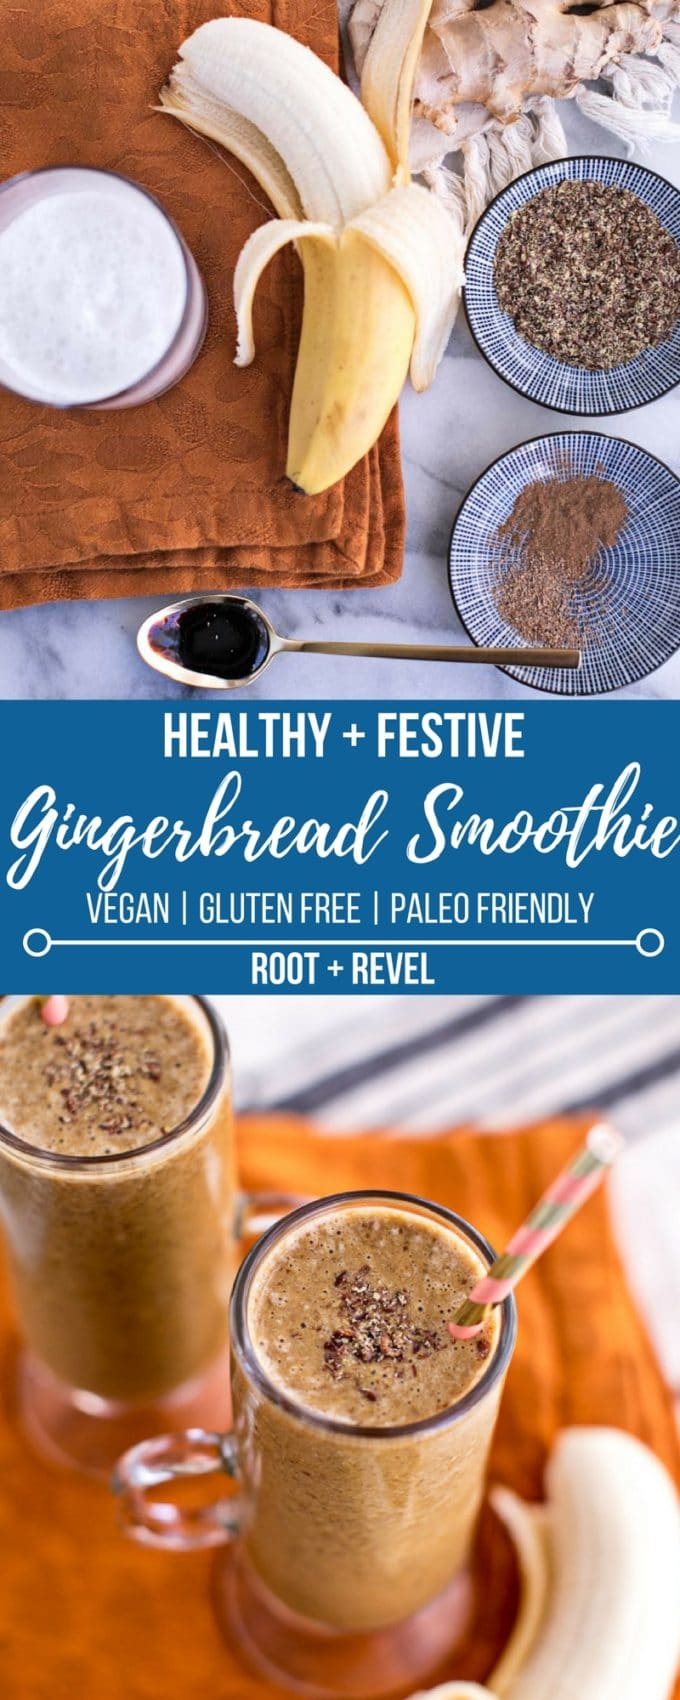 This Christmas, make this healthy gingerbread smoothie recipe--a festive holiday drink that's vegan, gluten-free, Paleo-friendly and absolutely delicious! Made with molasses, this guilt-free gingerbread smoothie will put you in the holiday spirit, without any refined sugar. All you need is a blender and five simple ingredients, and your breakfasts just got a whole lot better.